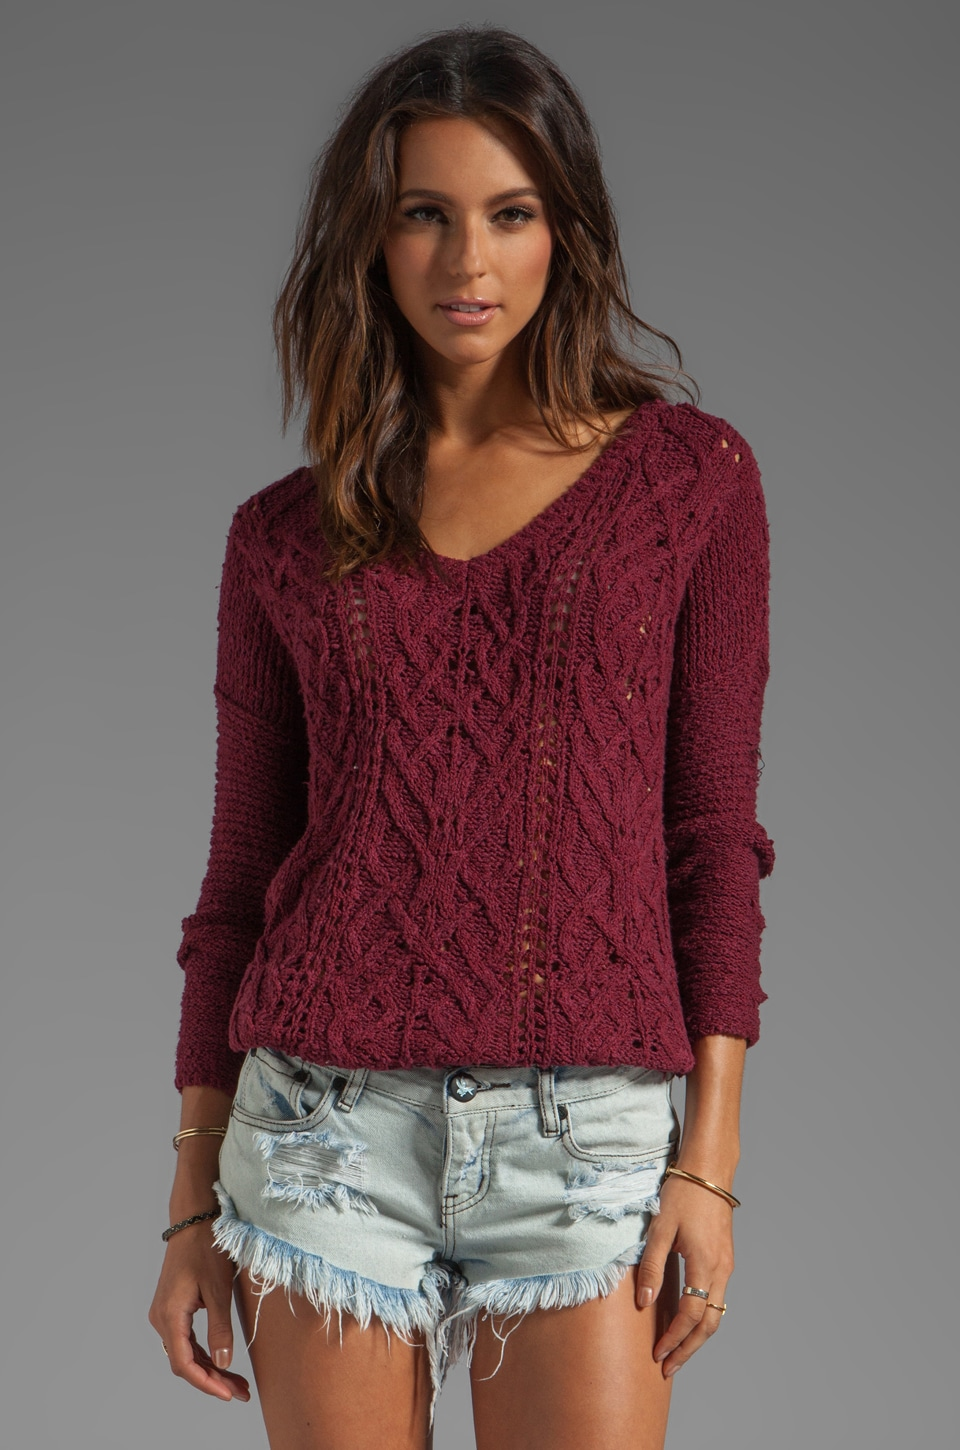 Free People Cross My Heart Sweater in Wine